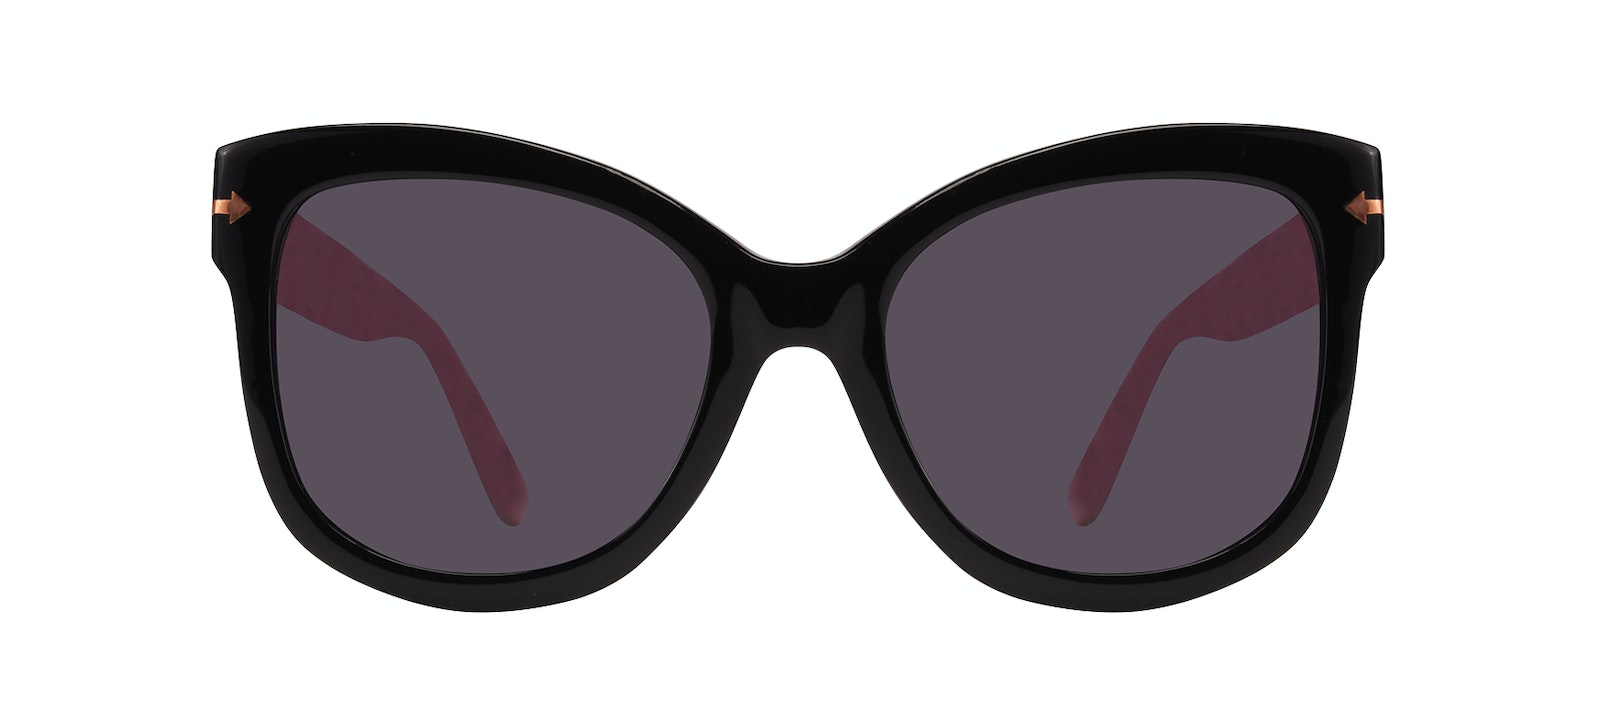 Affordable Fashion Glasses Cat Eye Square Sunglasses Women Marlo Carbon Front